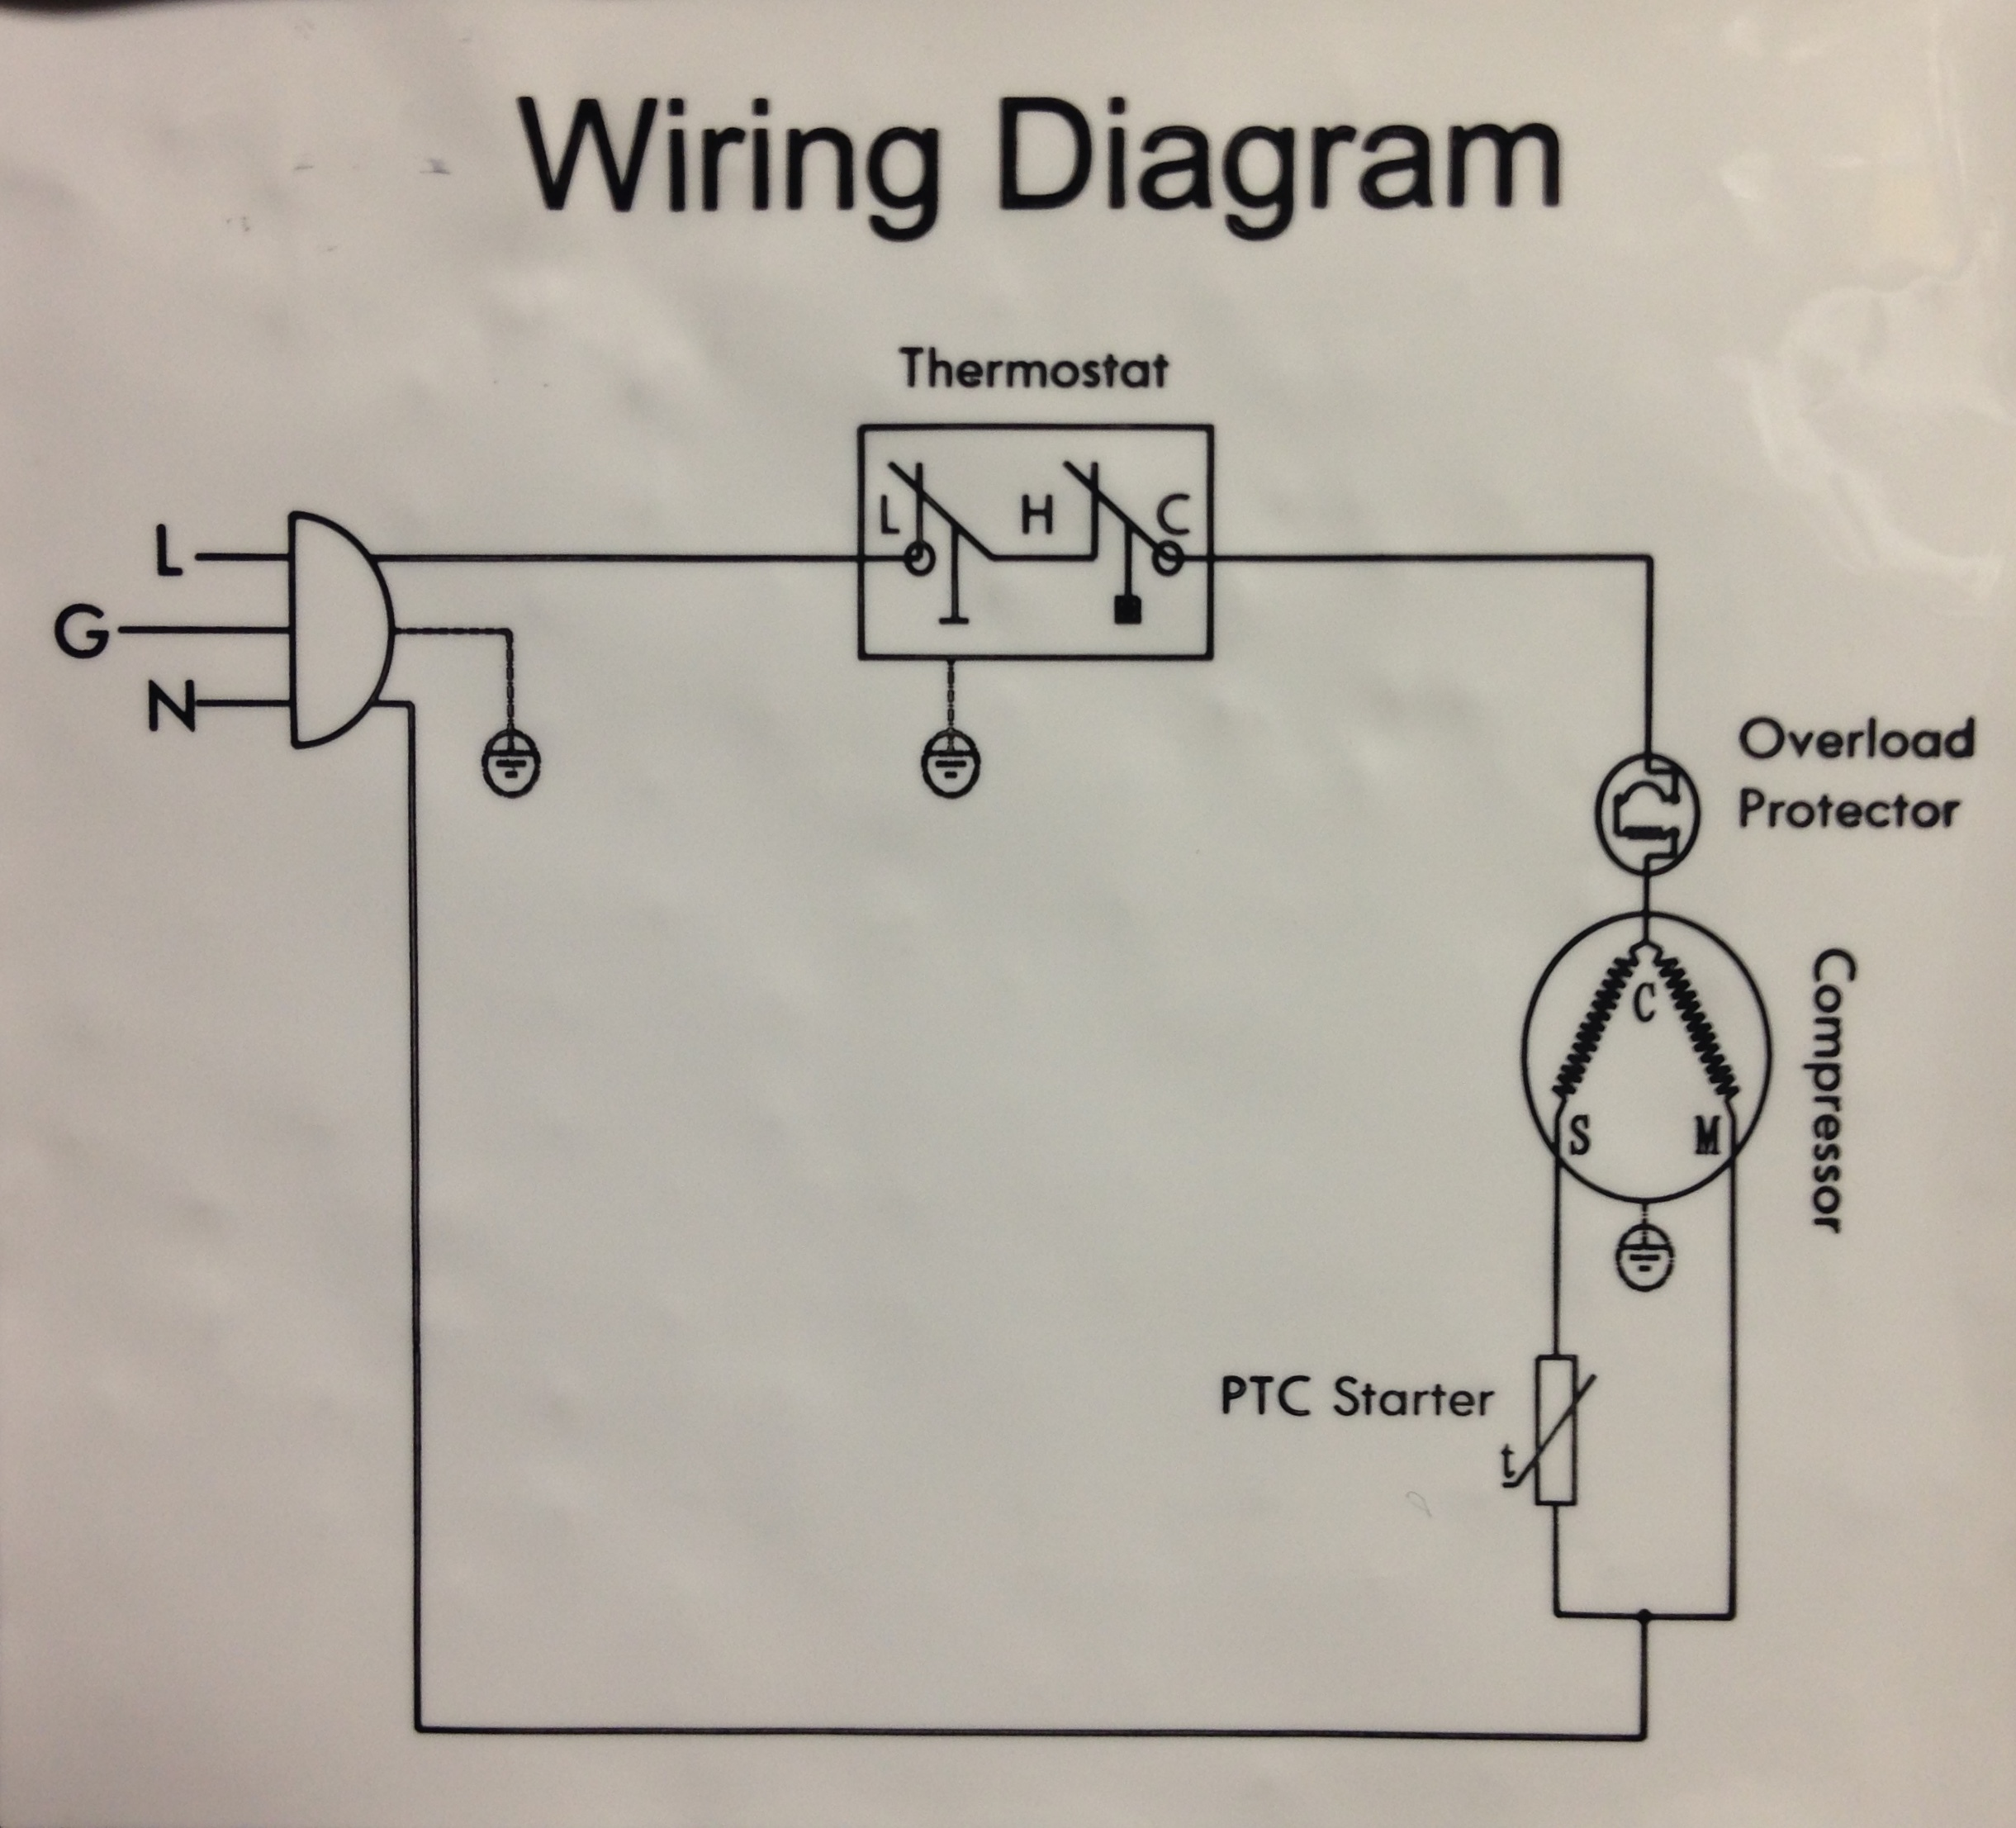 cooler wiring schematic wiring diagram show cooler wiring schematic wiring diagram list cooler wiring schematic